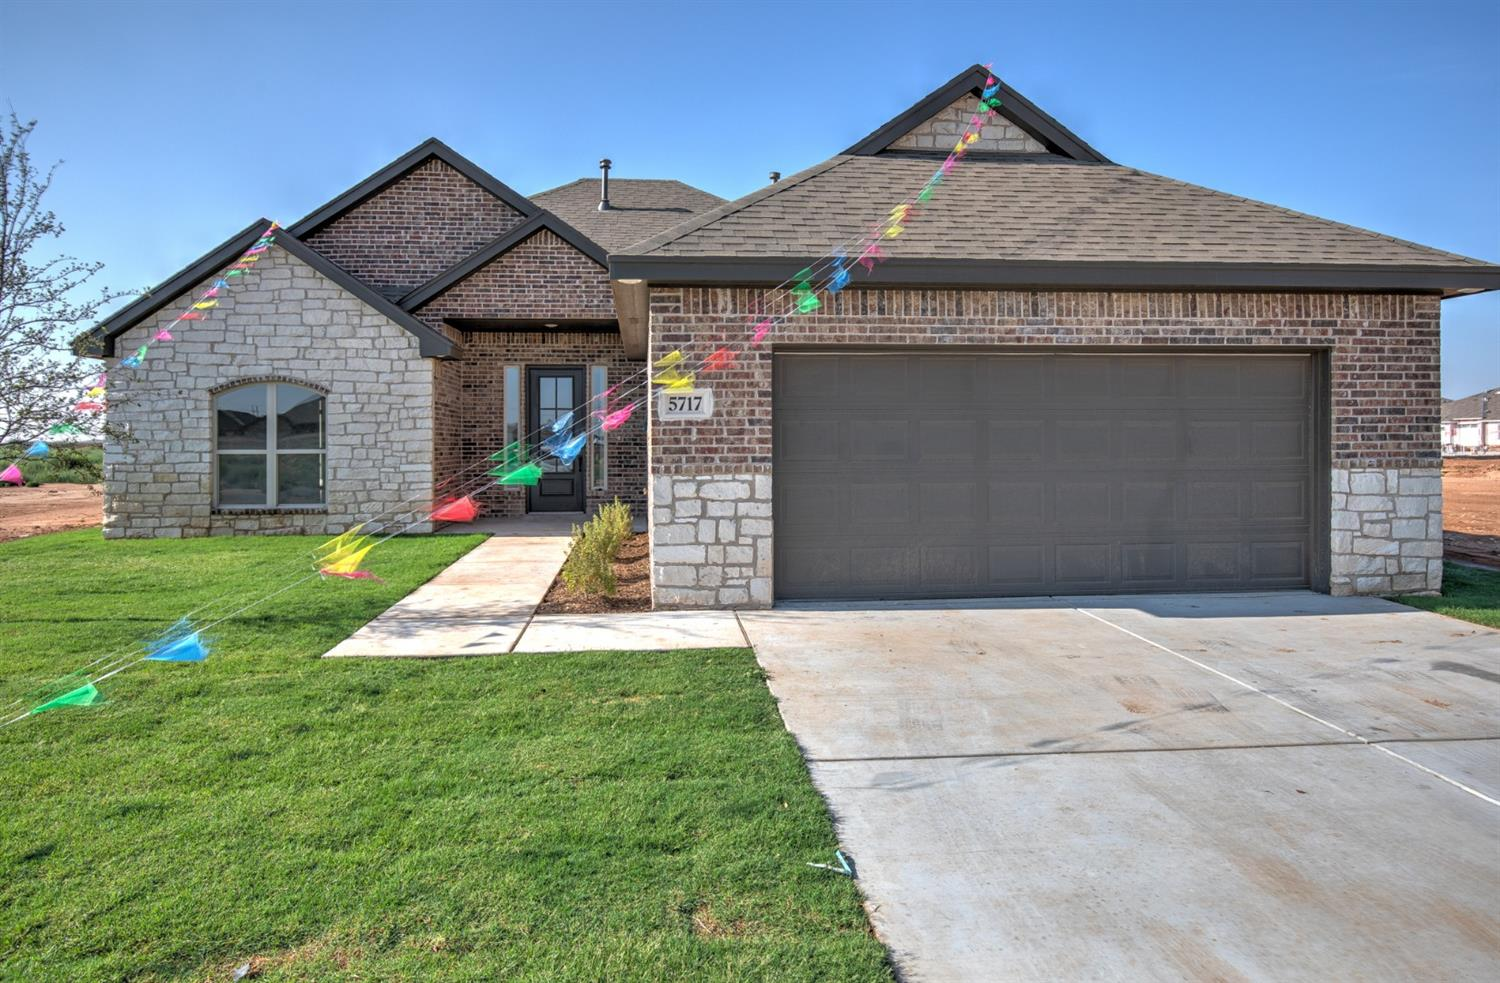 Located in Lubbock-Cooper ISD. Walking into this well designed open concept home you will be greeted with soaring 12' ceilings in the living room, luxurious wood tile, and gas fireplace. The chefs kitchen features cabinets to the ceiling with LED lighting, large window above your sink, stainless steel appliances, gas stove, large walk in pantry and a large island perfect for entertaining. Large isolated master suite with separate sinks, spacious walk in closet and separate tub and shower. The guest bedrooms are oversized with a jack n jill bathroom, as well as a second master in the back with its own bathroom, perfect for a mother in law suite! Large covered patio perfect for nice summer nights. Call today to schedule your showing, this home won't last long!